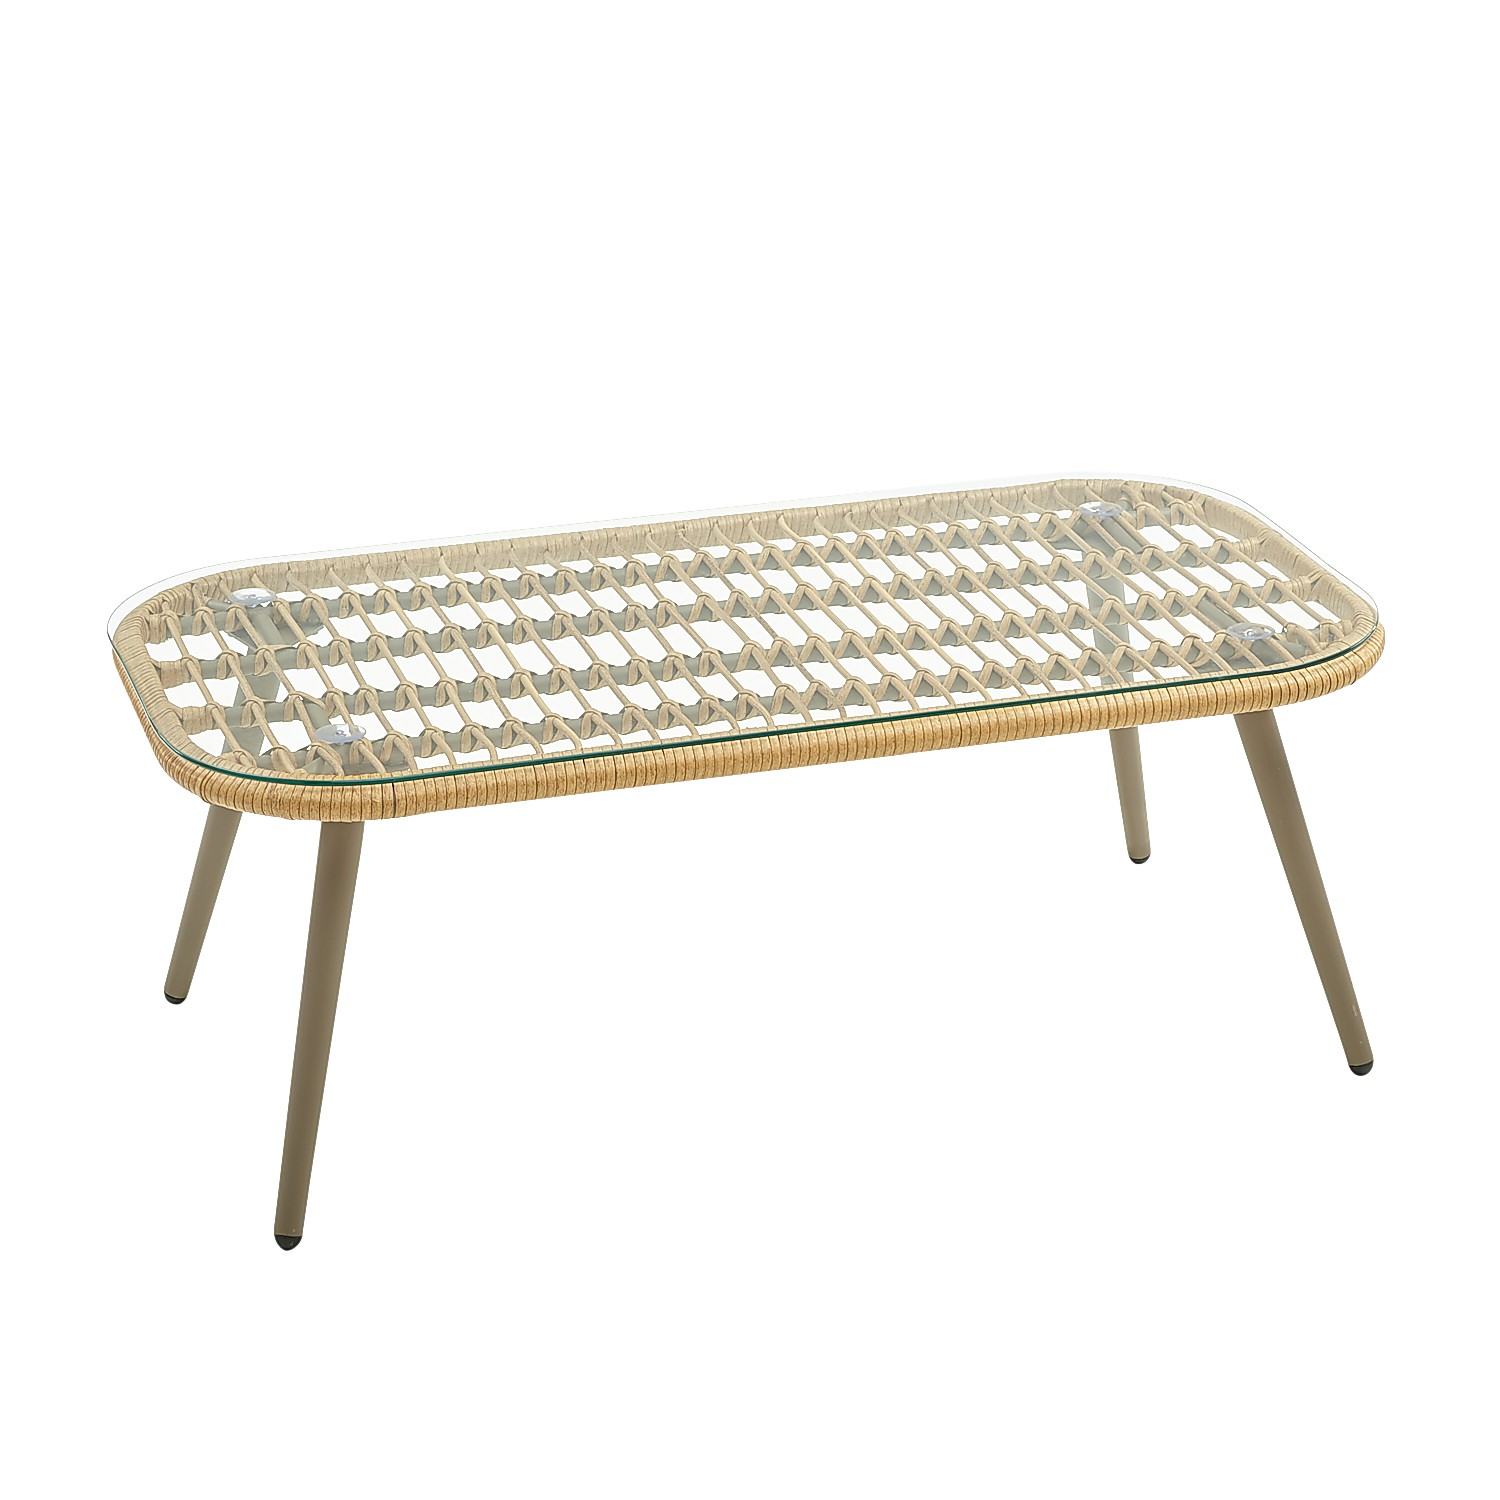 Natural Wicker Deluxe Coffee Table with Glass Top